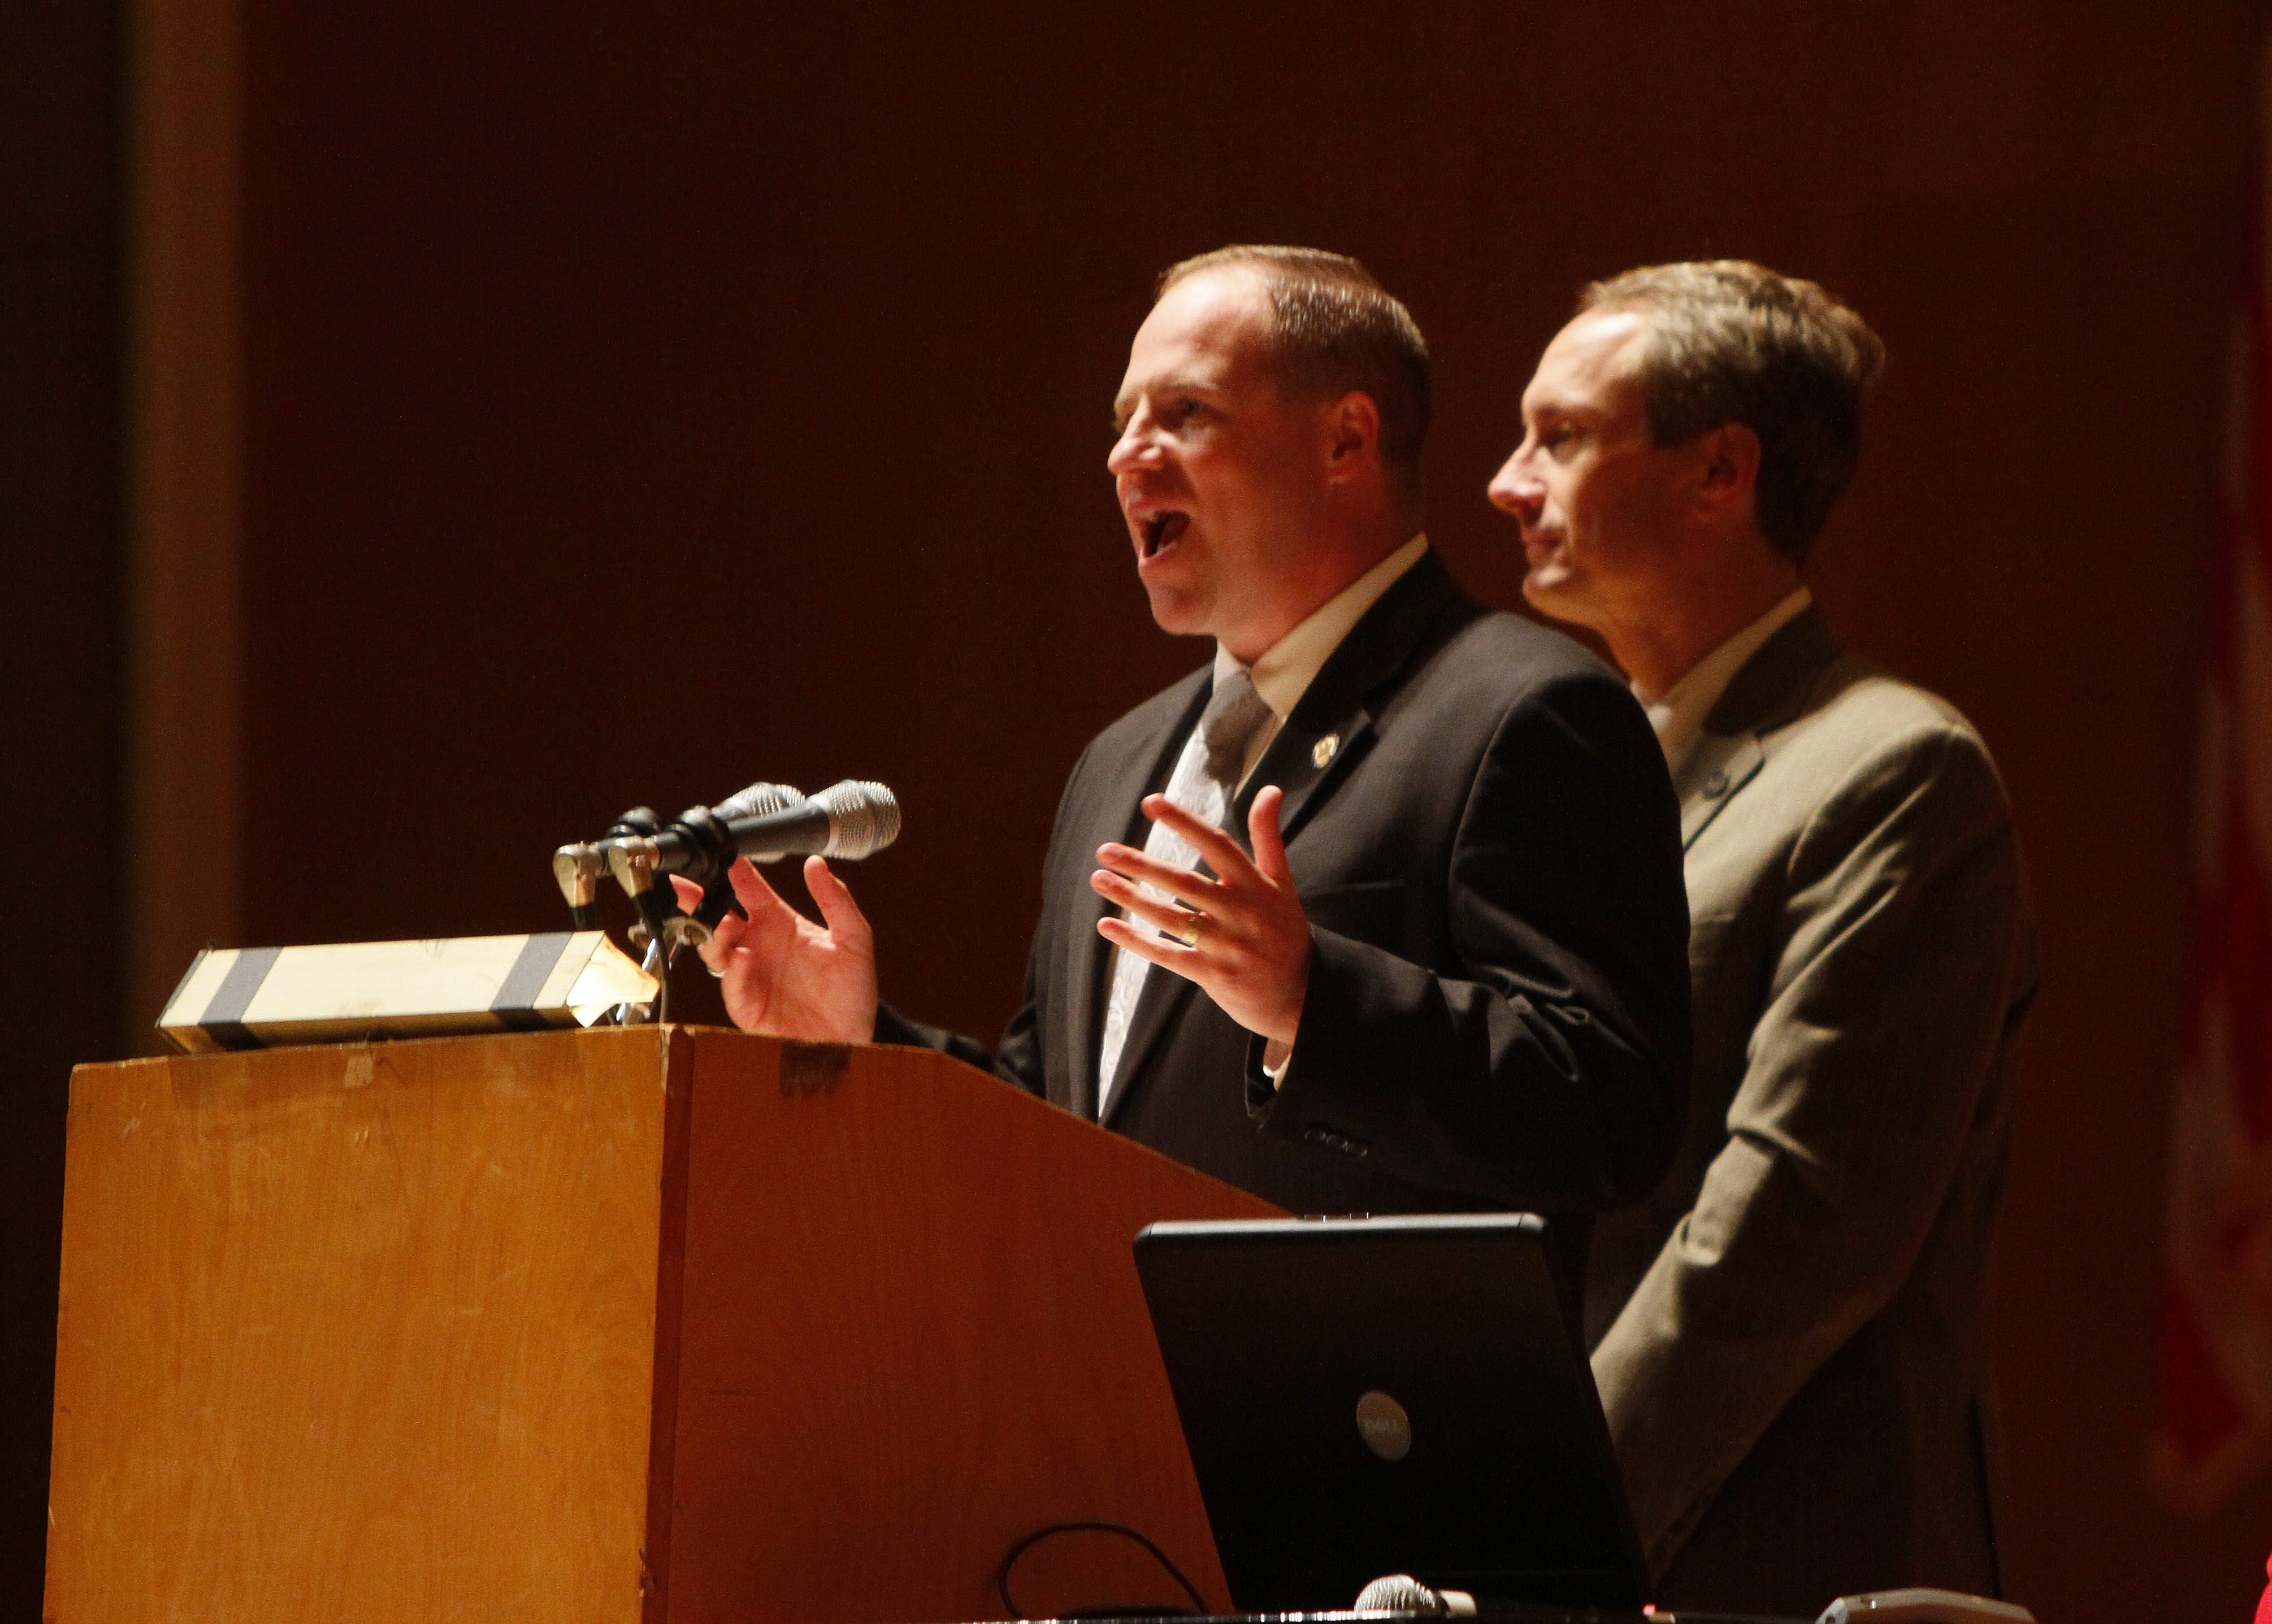 State Senator Tim Kennedy, left, and State Assemblyman Sean Ryan. right, speak to a crowd of parents and teachers during a Summit for Smarter Schools at Kleinhans in Buffalo on Oct. 2, 2013.